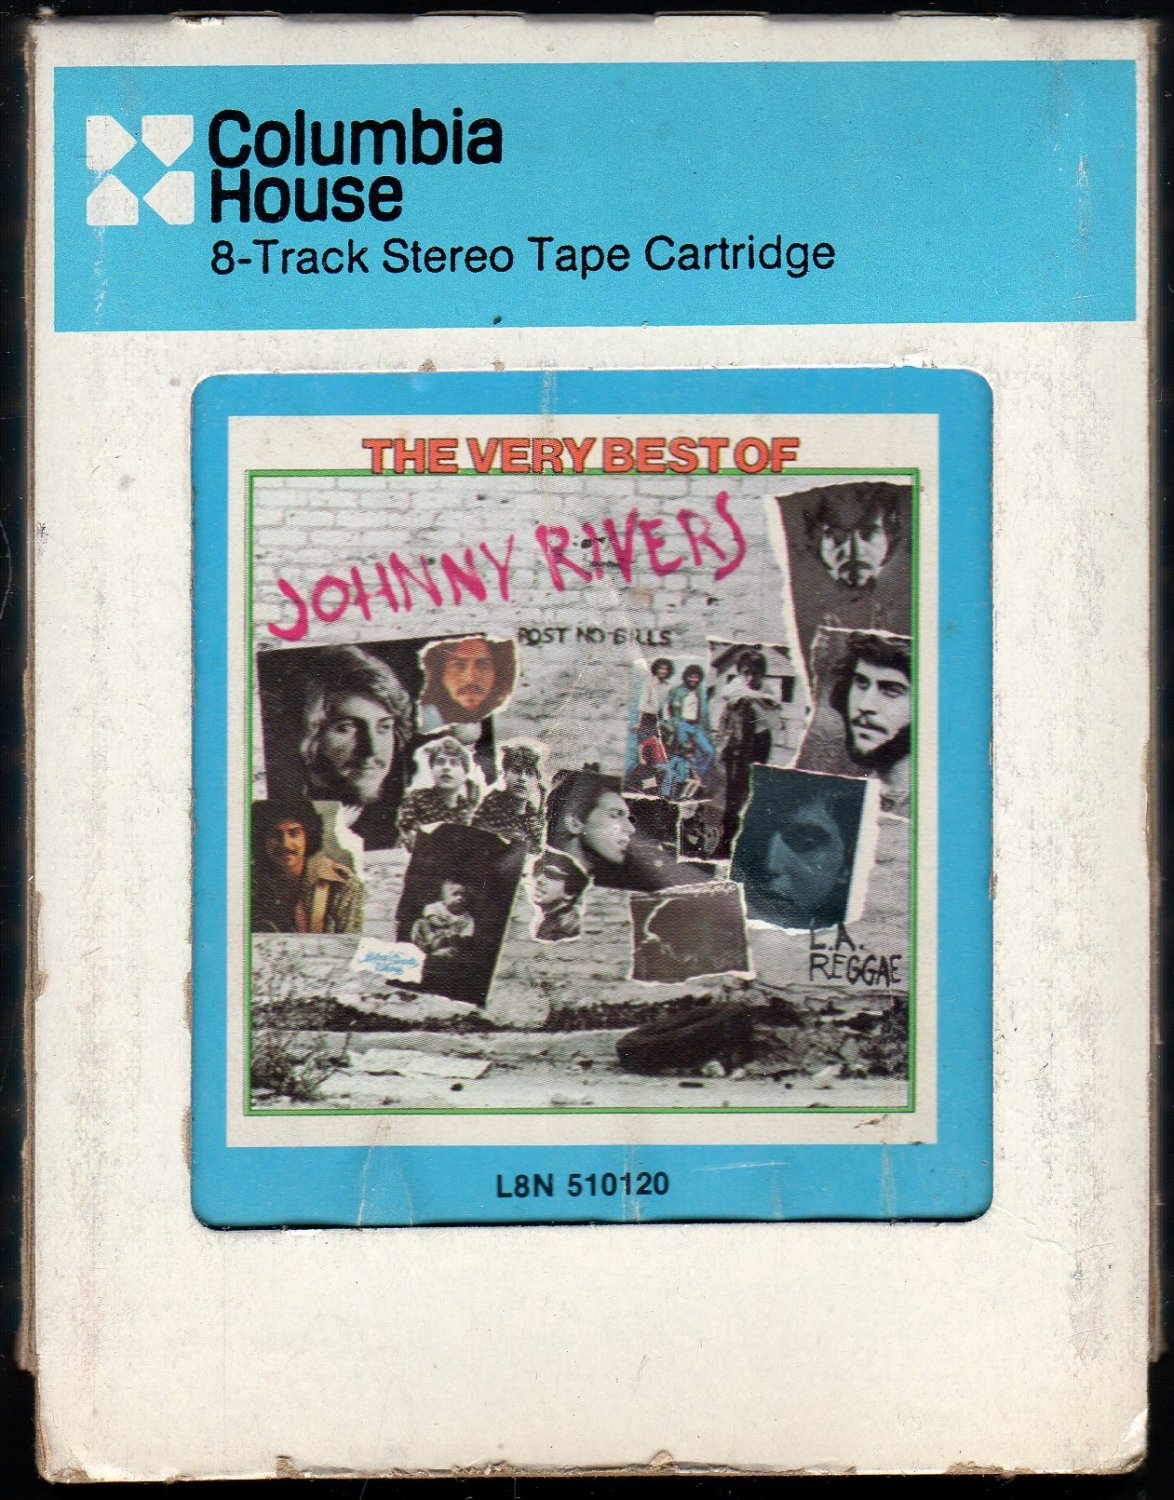 Johnny Rivers - The Very Best Of Johnny Rivers 1975 CRC Re-issue A42 8-TRACK TAPE